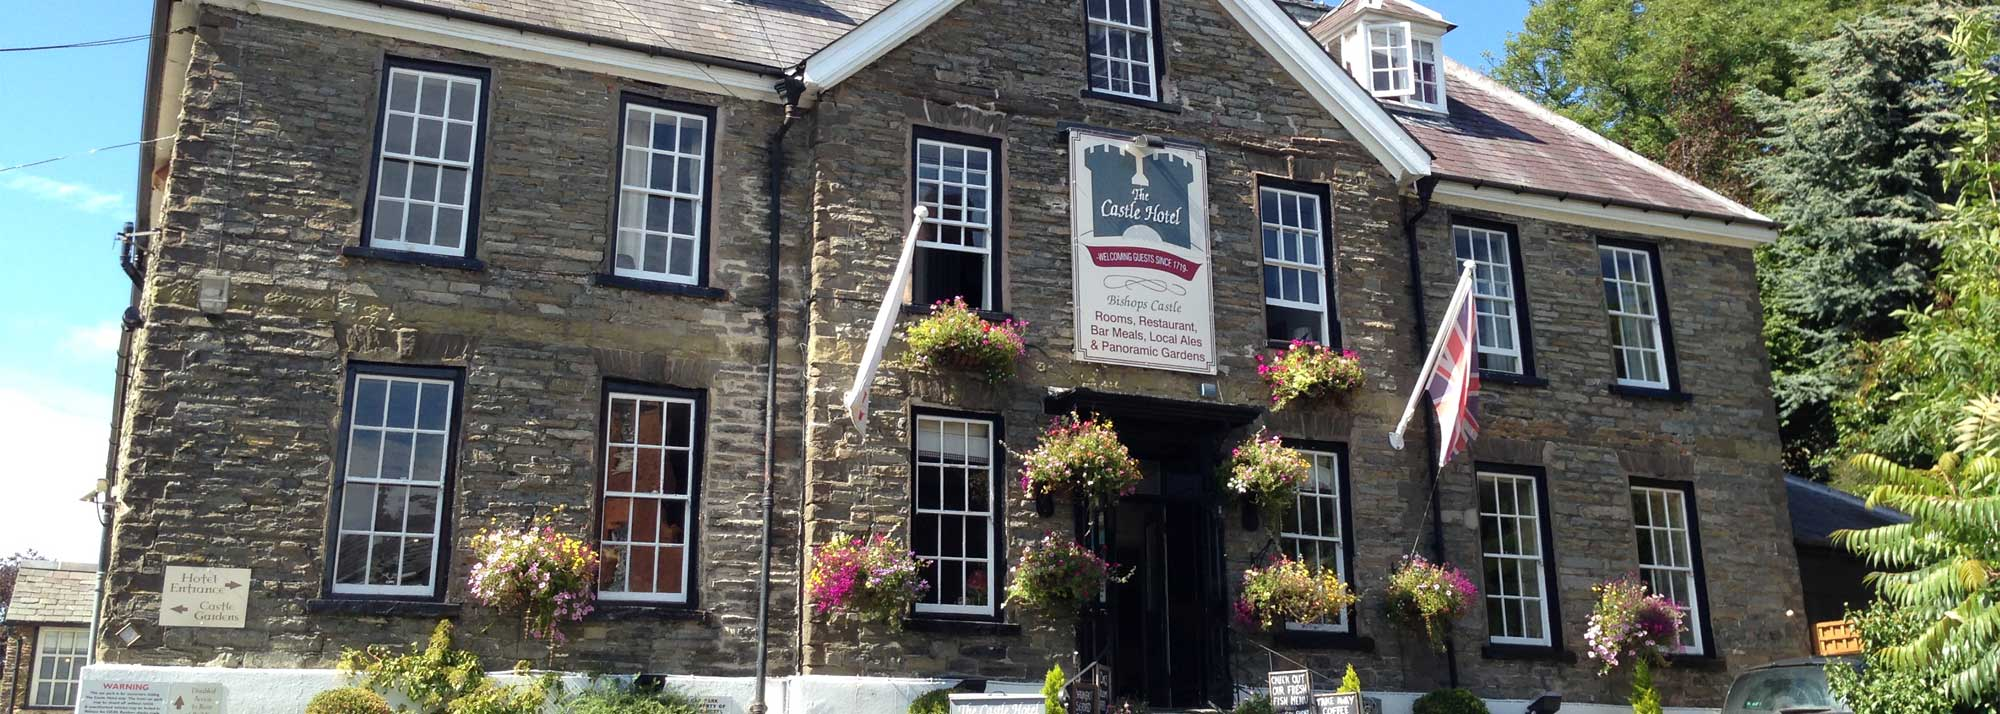 The Castle Hotel, Bishops Castle - A 4 star hotel in the South Shropshire Hills offering stylish accommodation in a delightful and charming Shropshire market town.